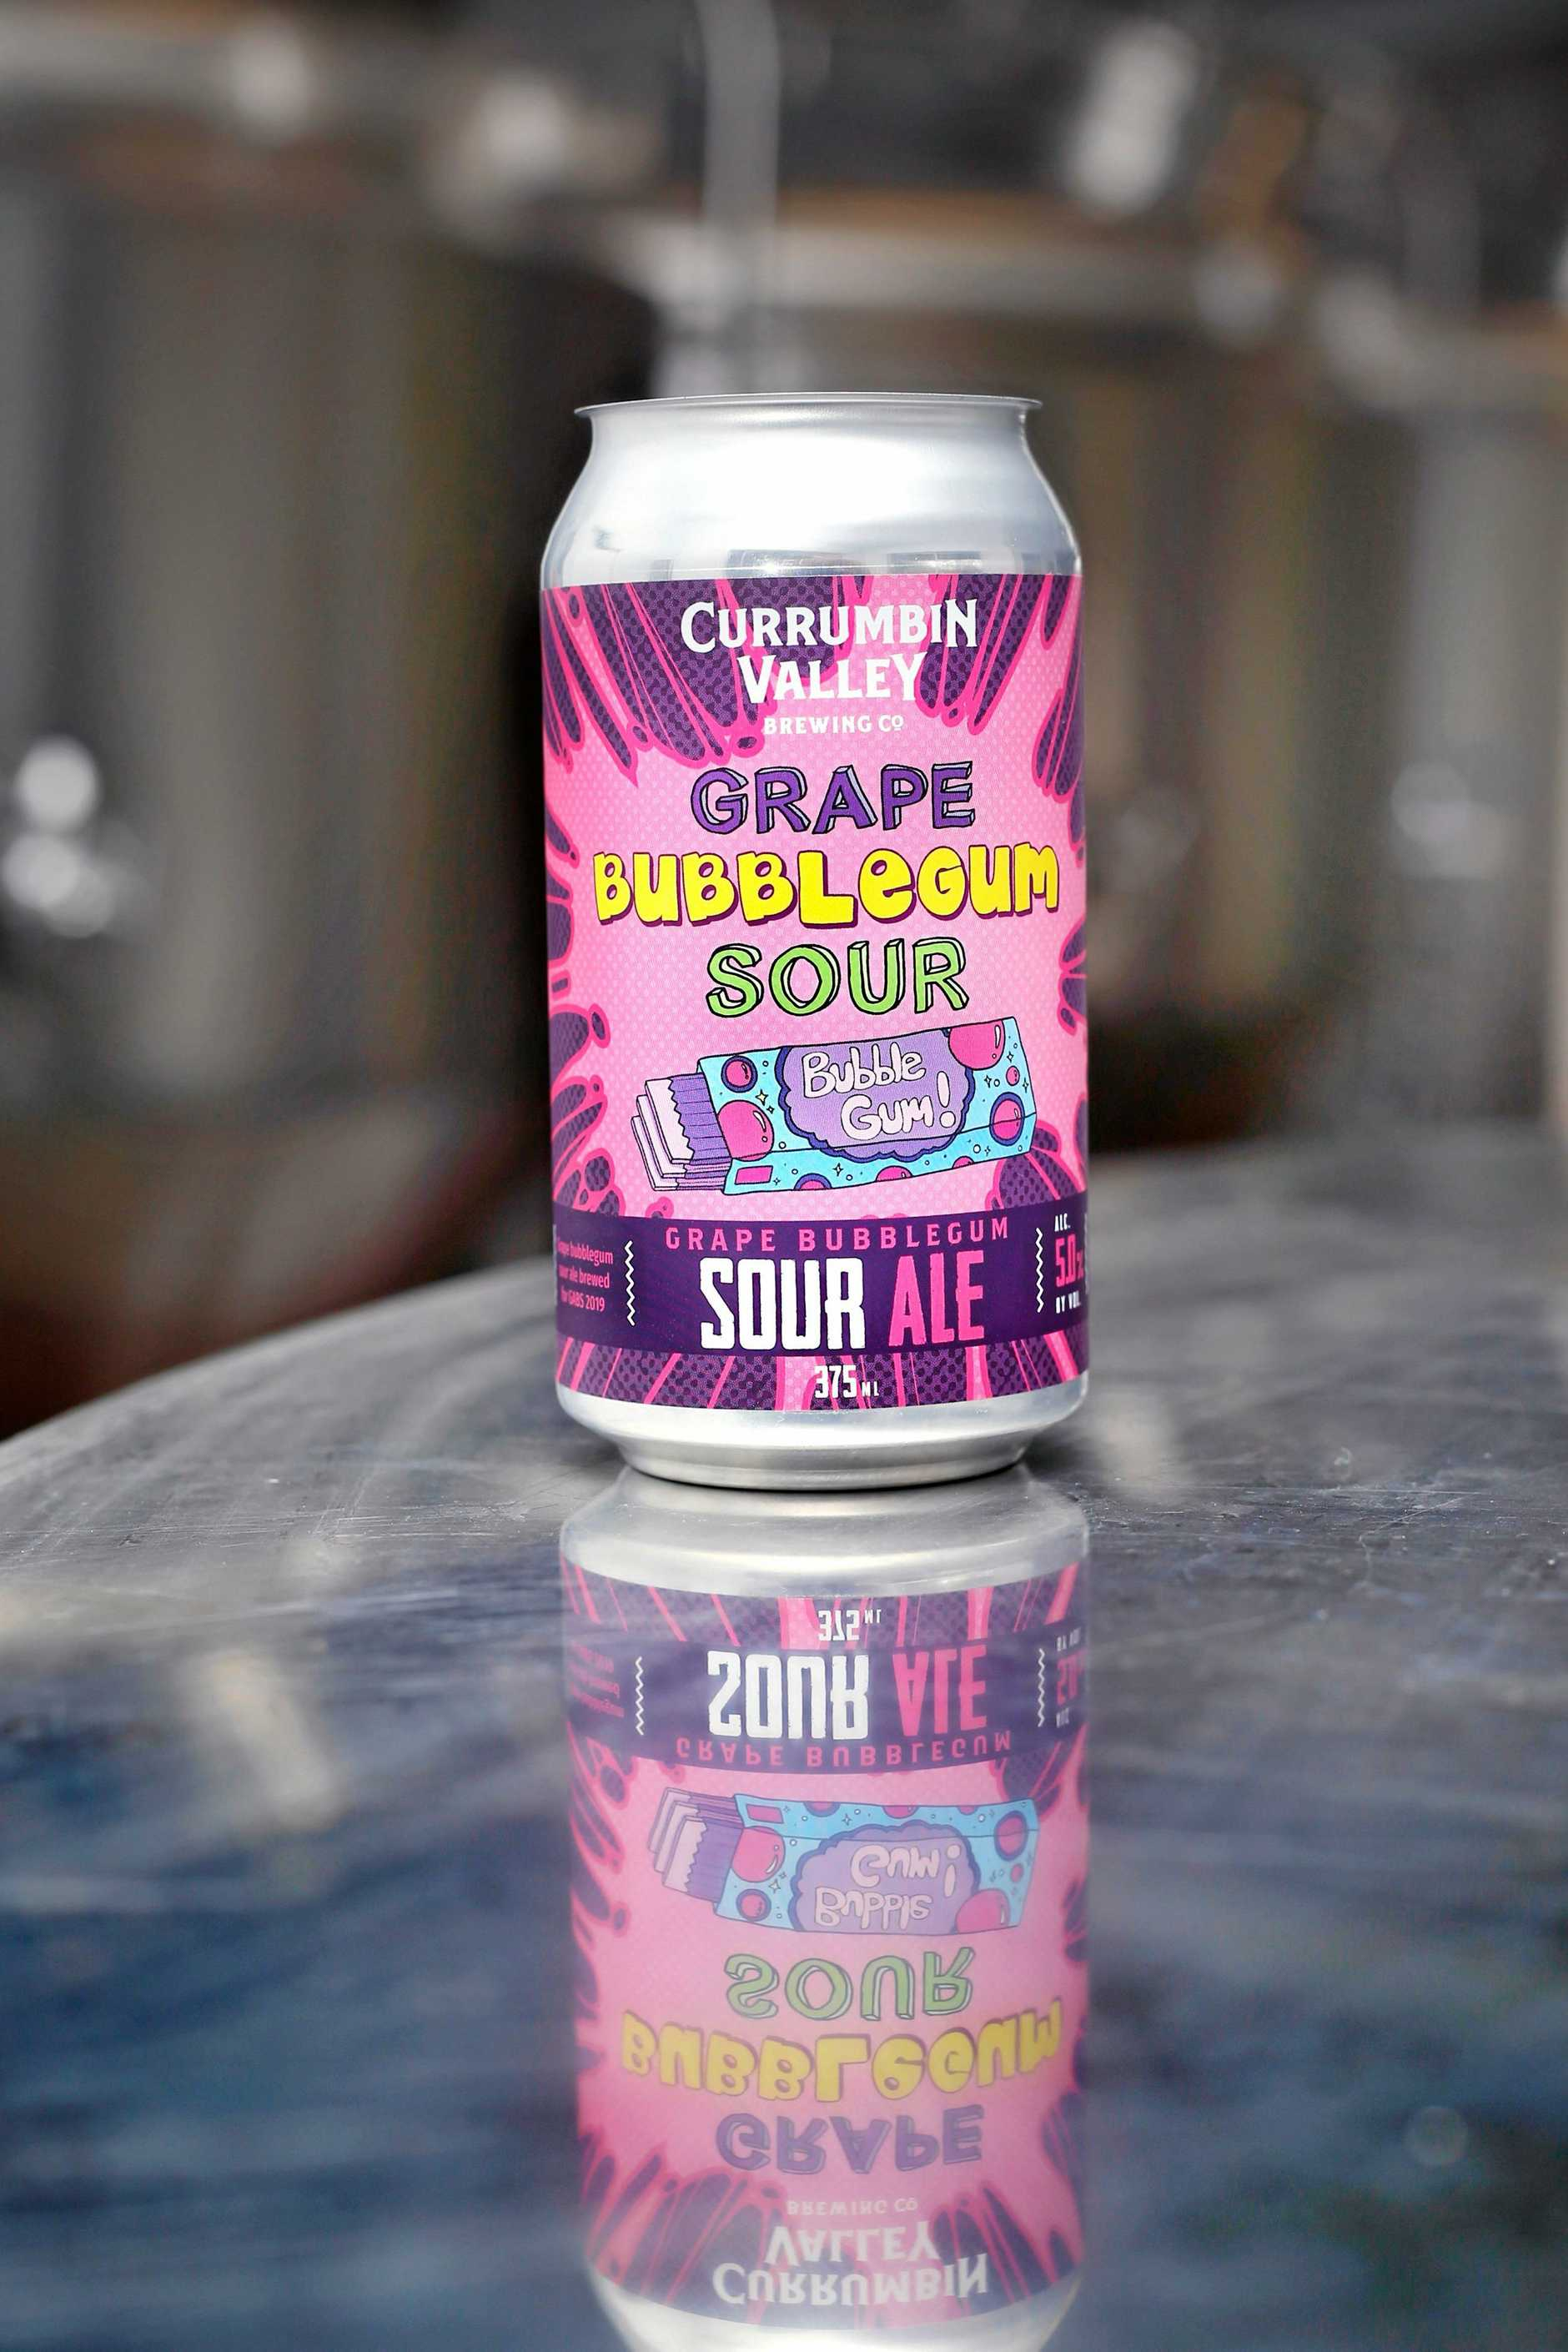 The Grape Bubblegum Sour was officially recognised at a recent beer event.